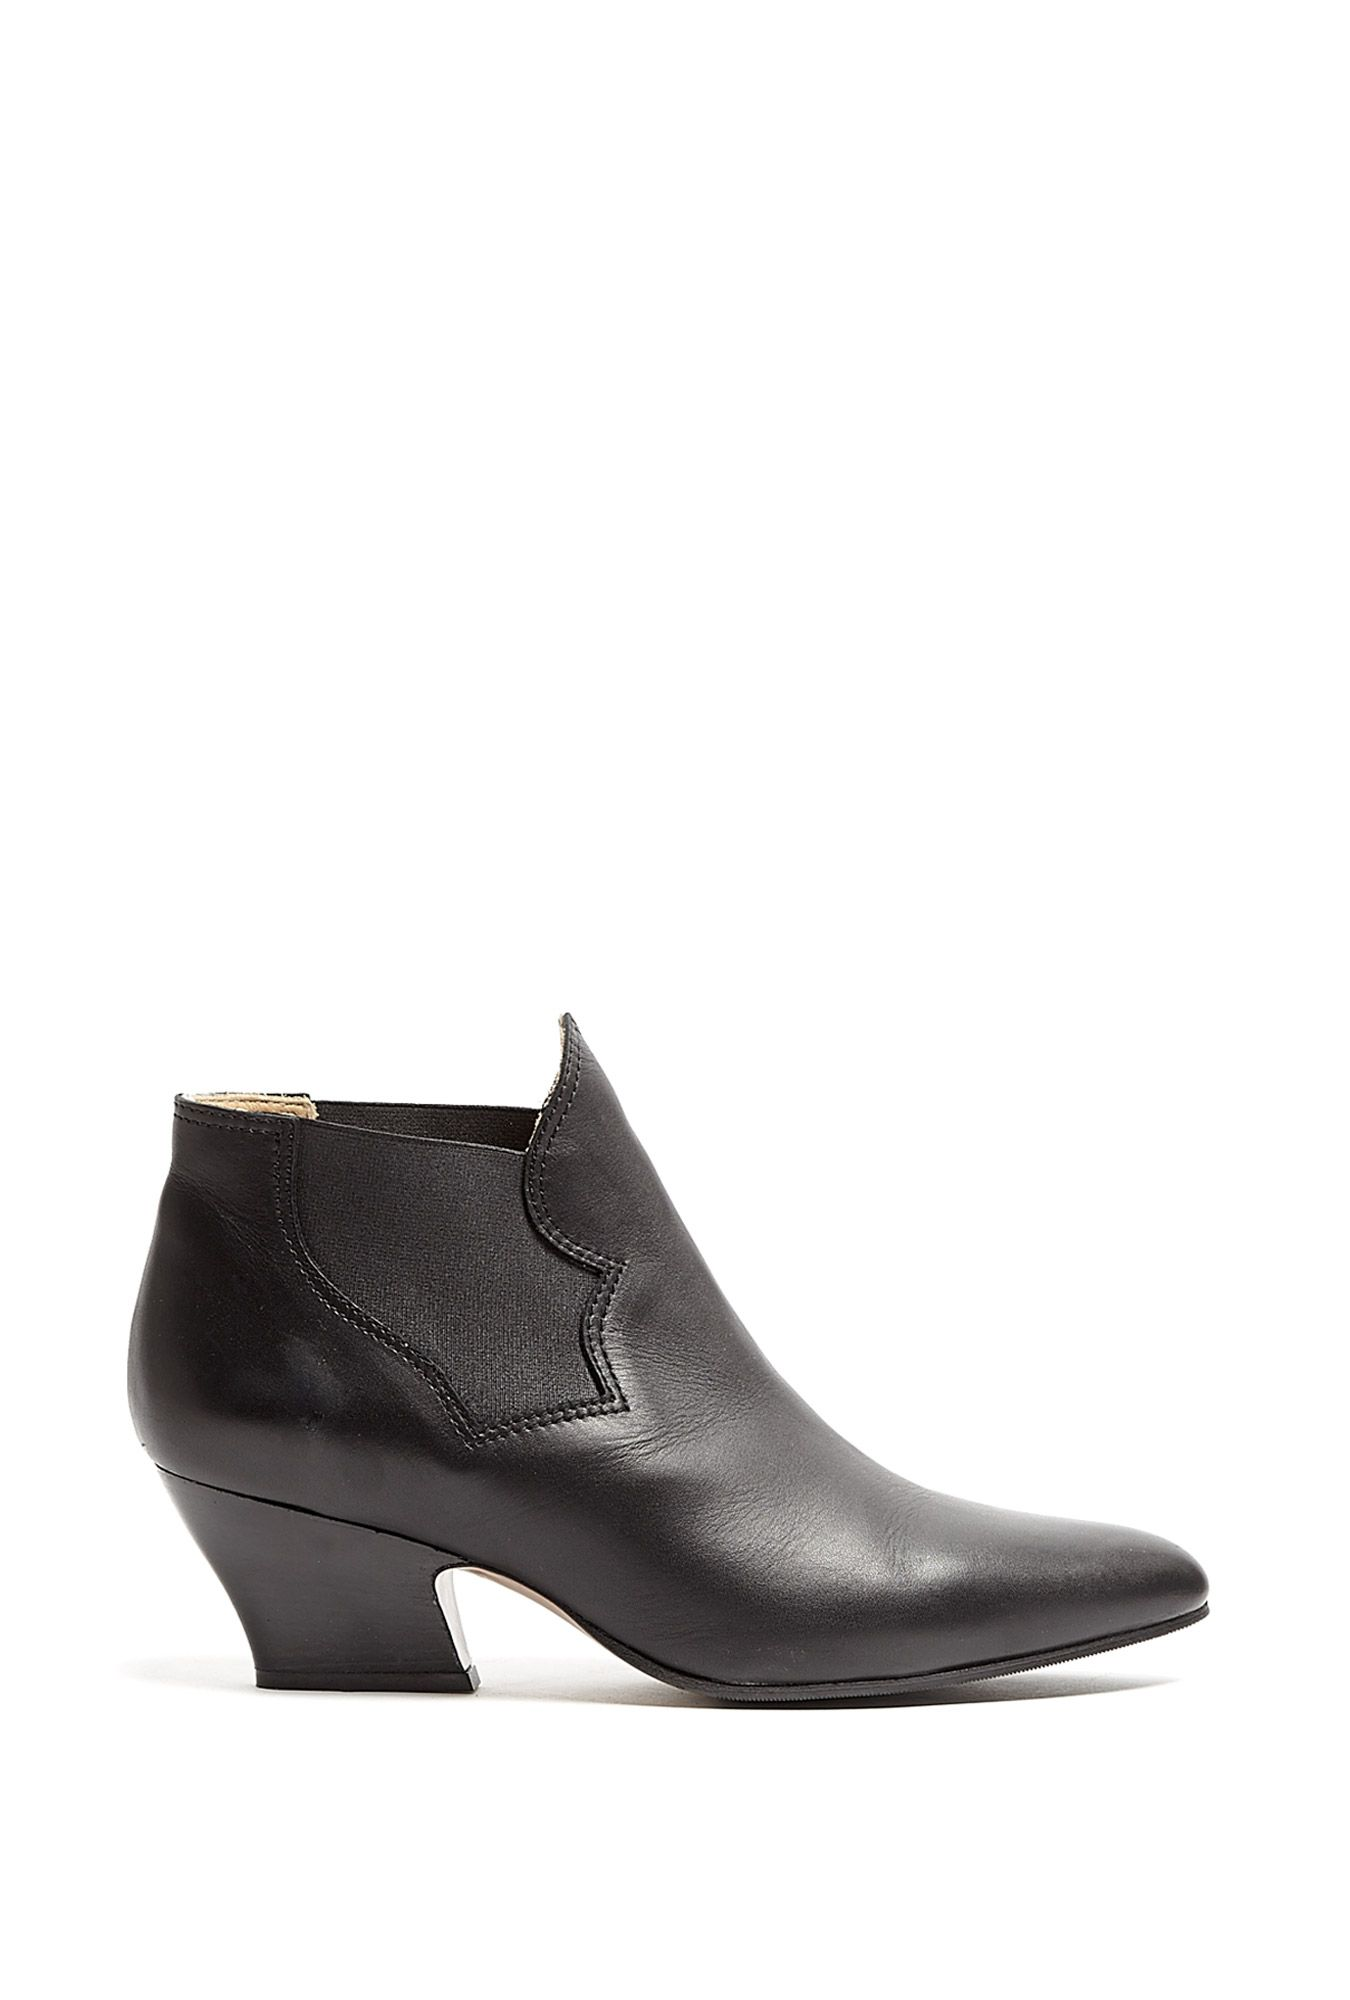 ef6192c11bed Black Matte Finish Alma Boots by Acne Leather Ankle Boots